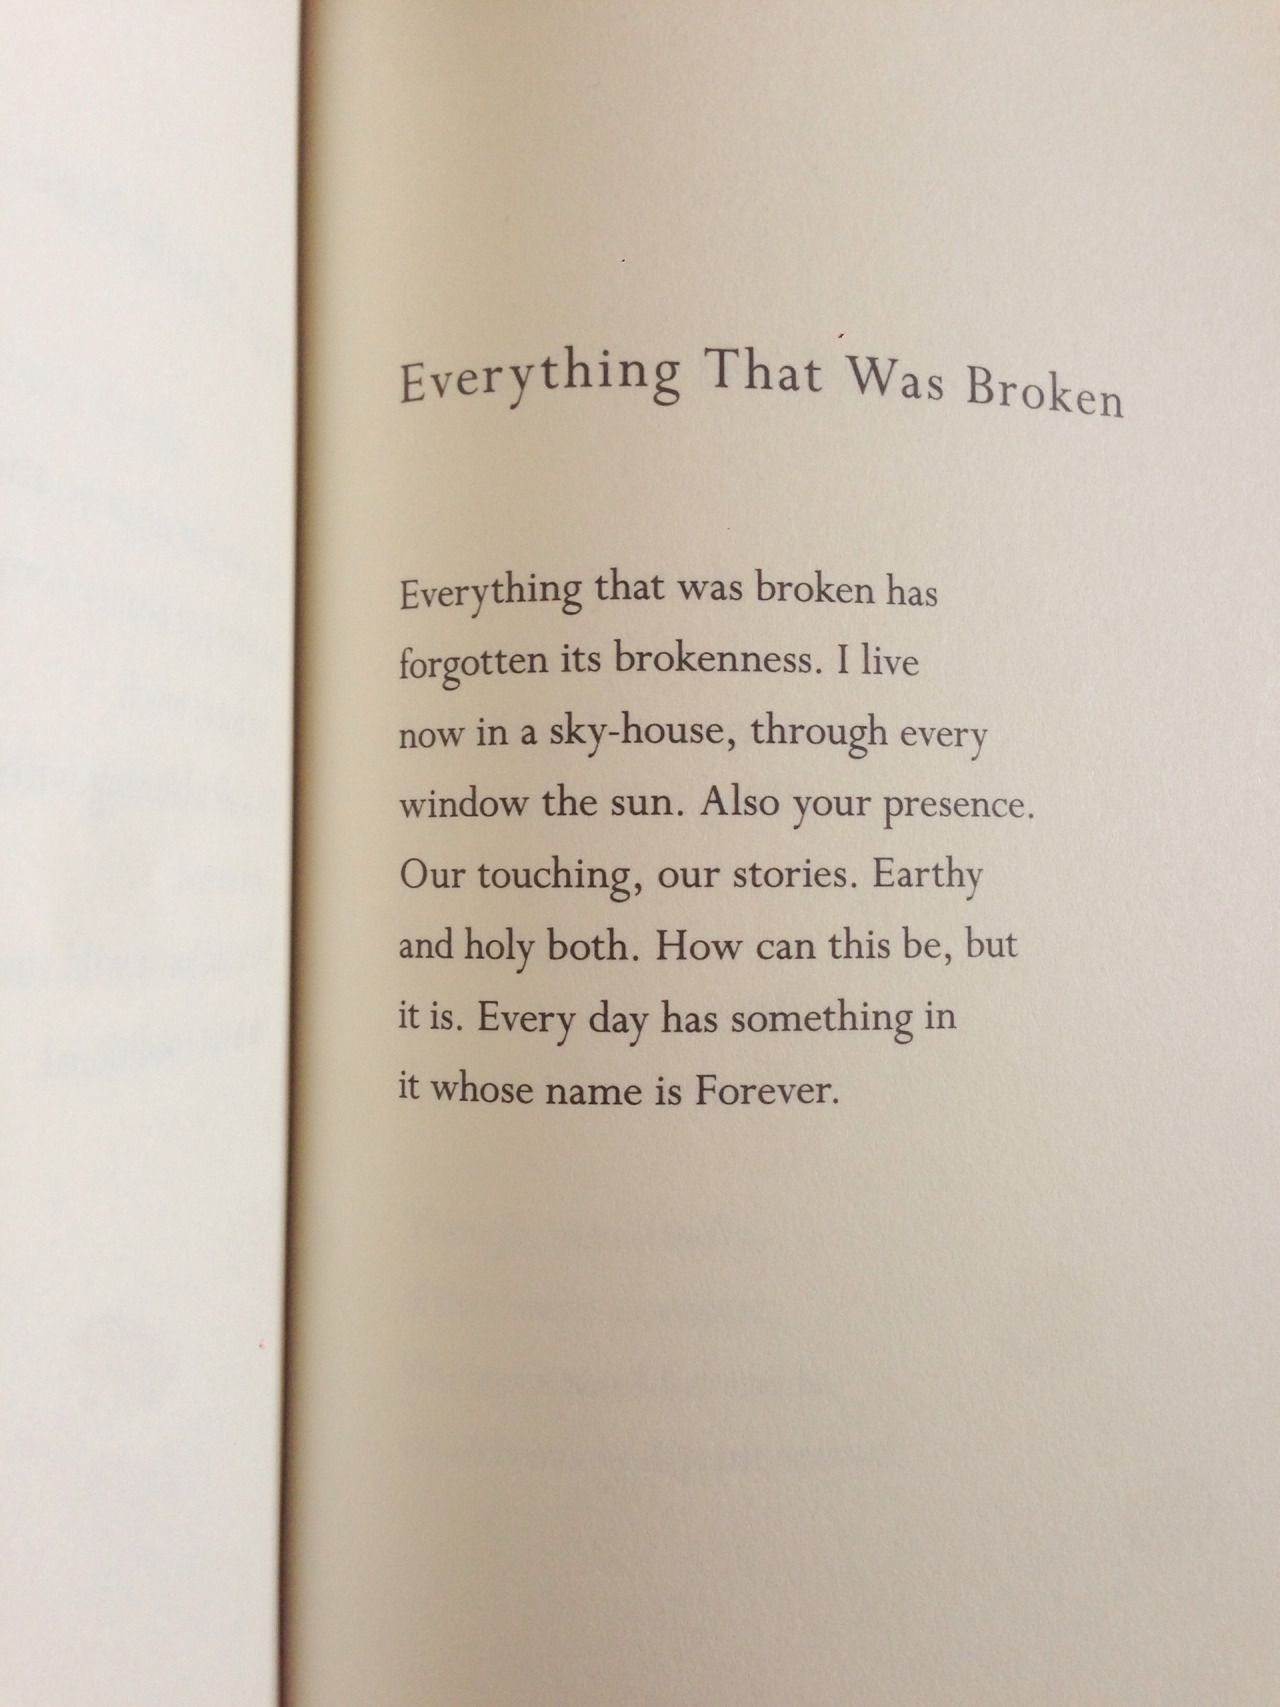 Poem by Mary Oliver faith worship vision